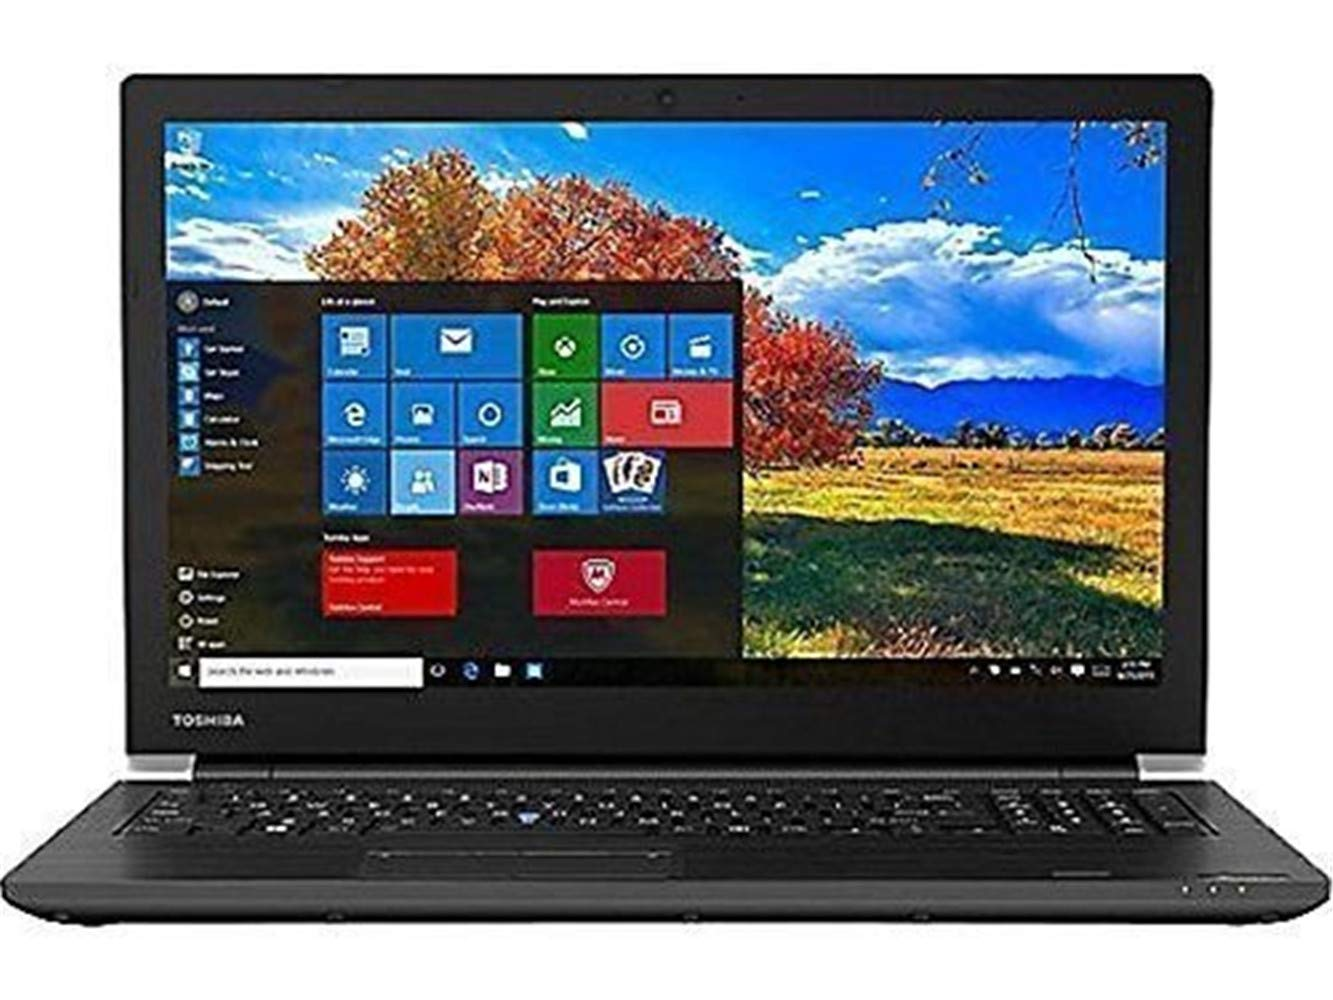 "2019 TOSHIBA Tecra A50-E 15.6"" Business Laptop Computer, 8th Gen Quad-Core i7-8550U up to 4.0GHz, 12GB DDR4 RAM, 256GB SSD, DVDRW, 802.11ac WiFi, Bluetooth, HDMI, USB 3.0, Windows 10 Professional"